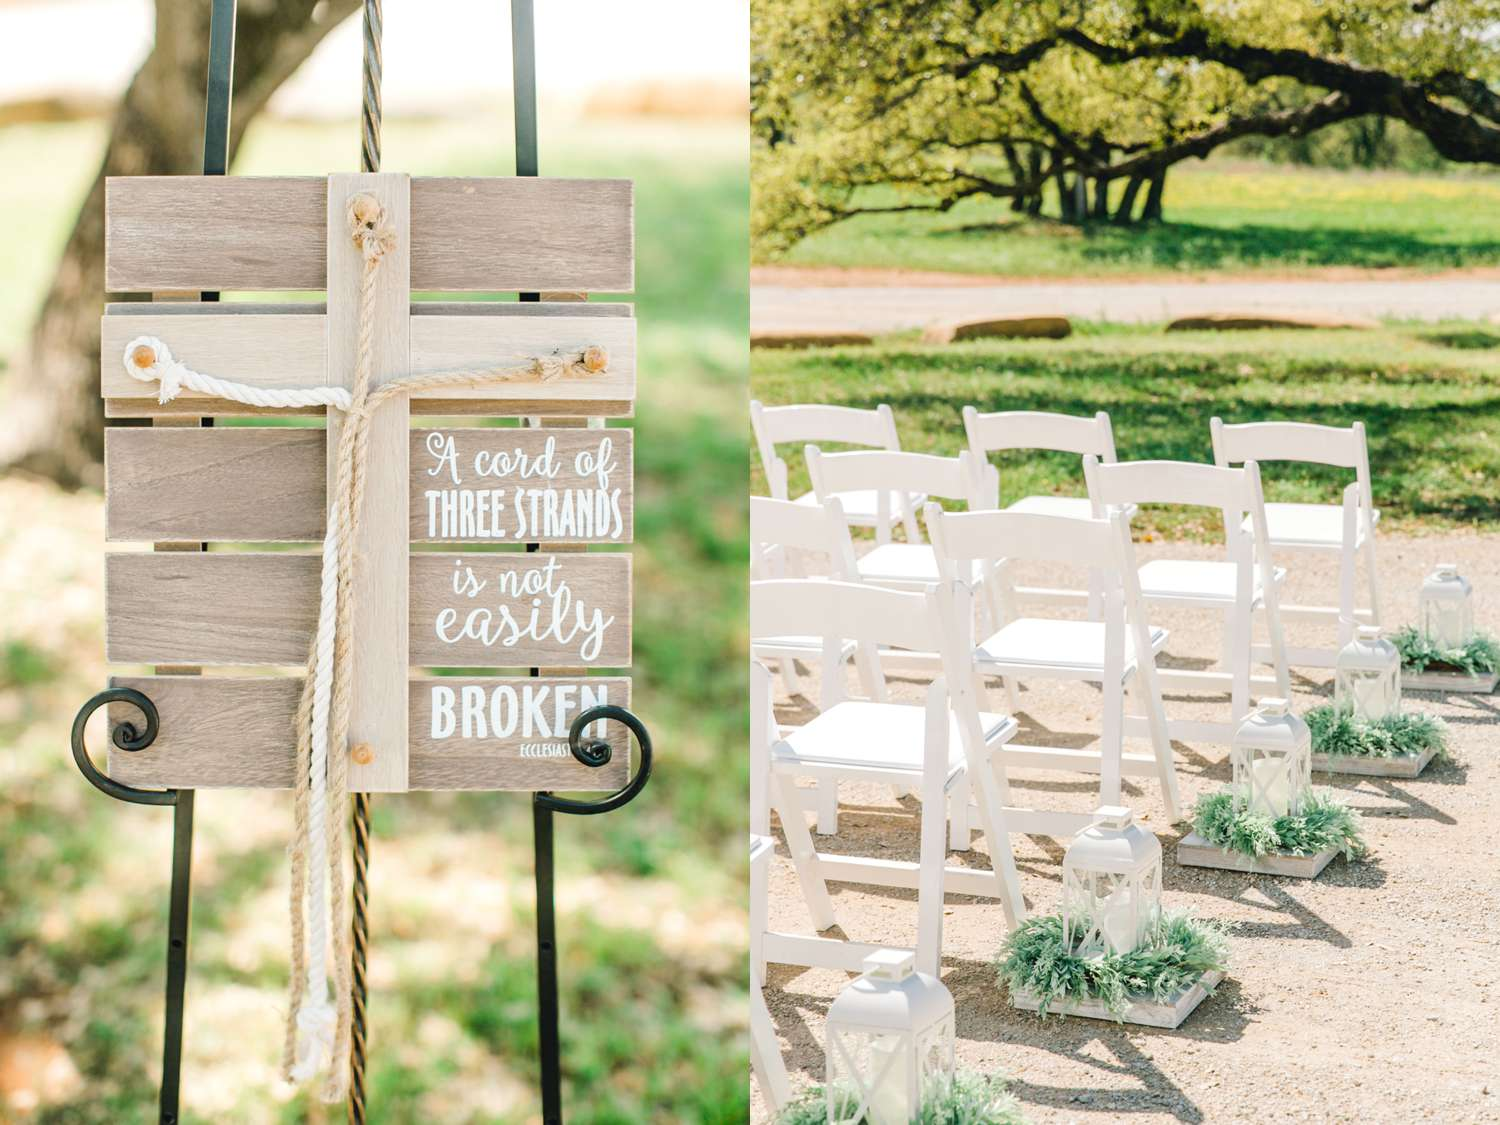 SARAH+TREVOR+BADGETT+SPARROW+CREEK+GRAHAM+TEXAS+ALLEEJ+WEDDINGS_0040.jpg